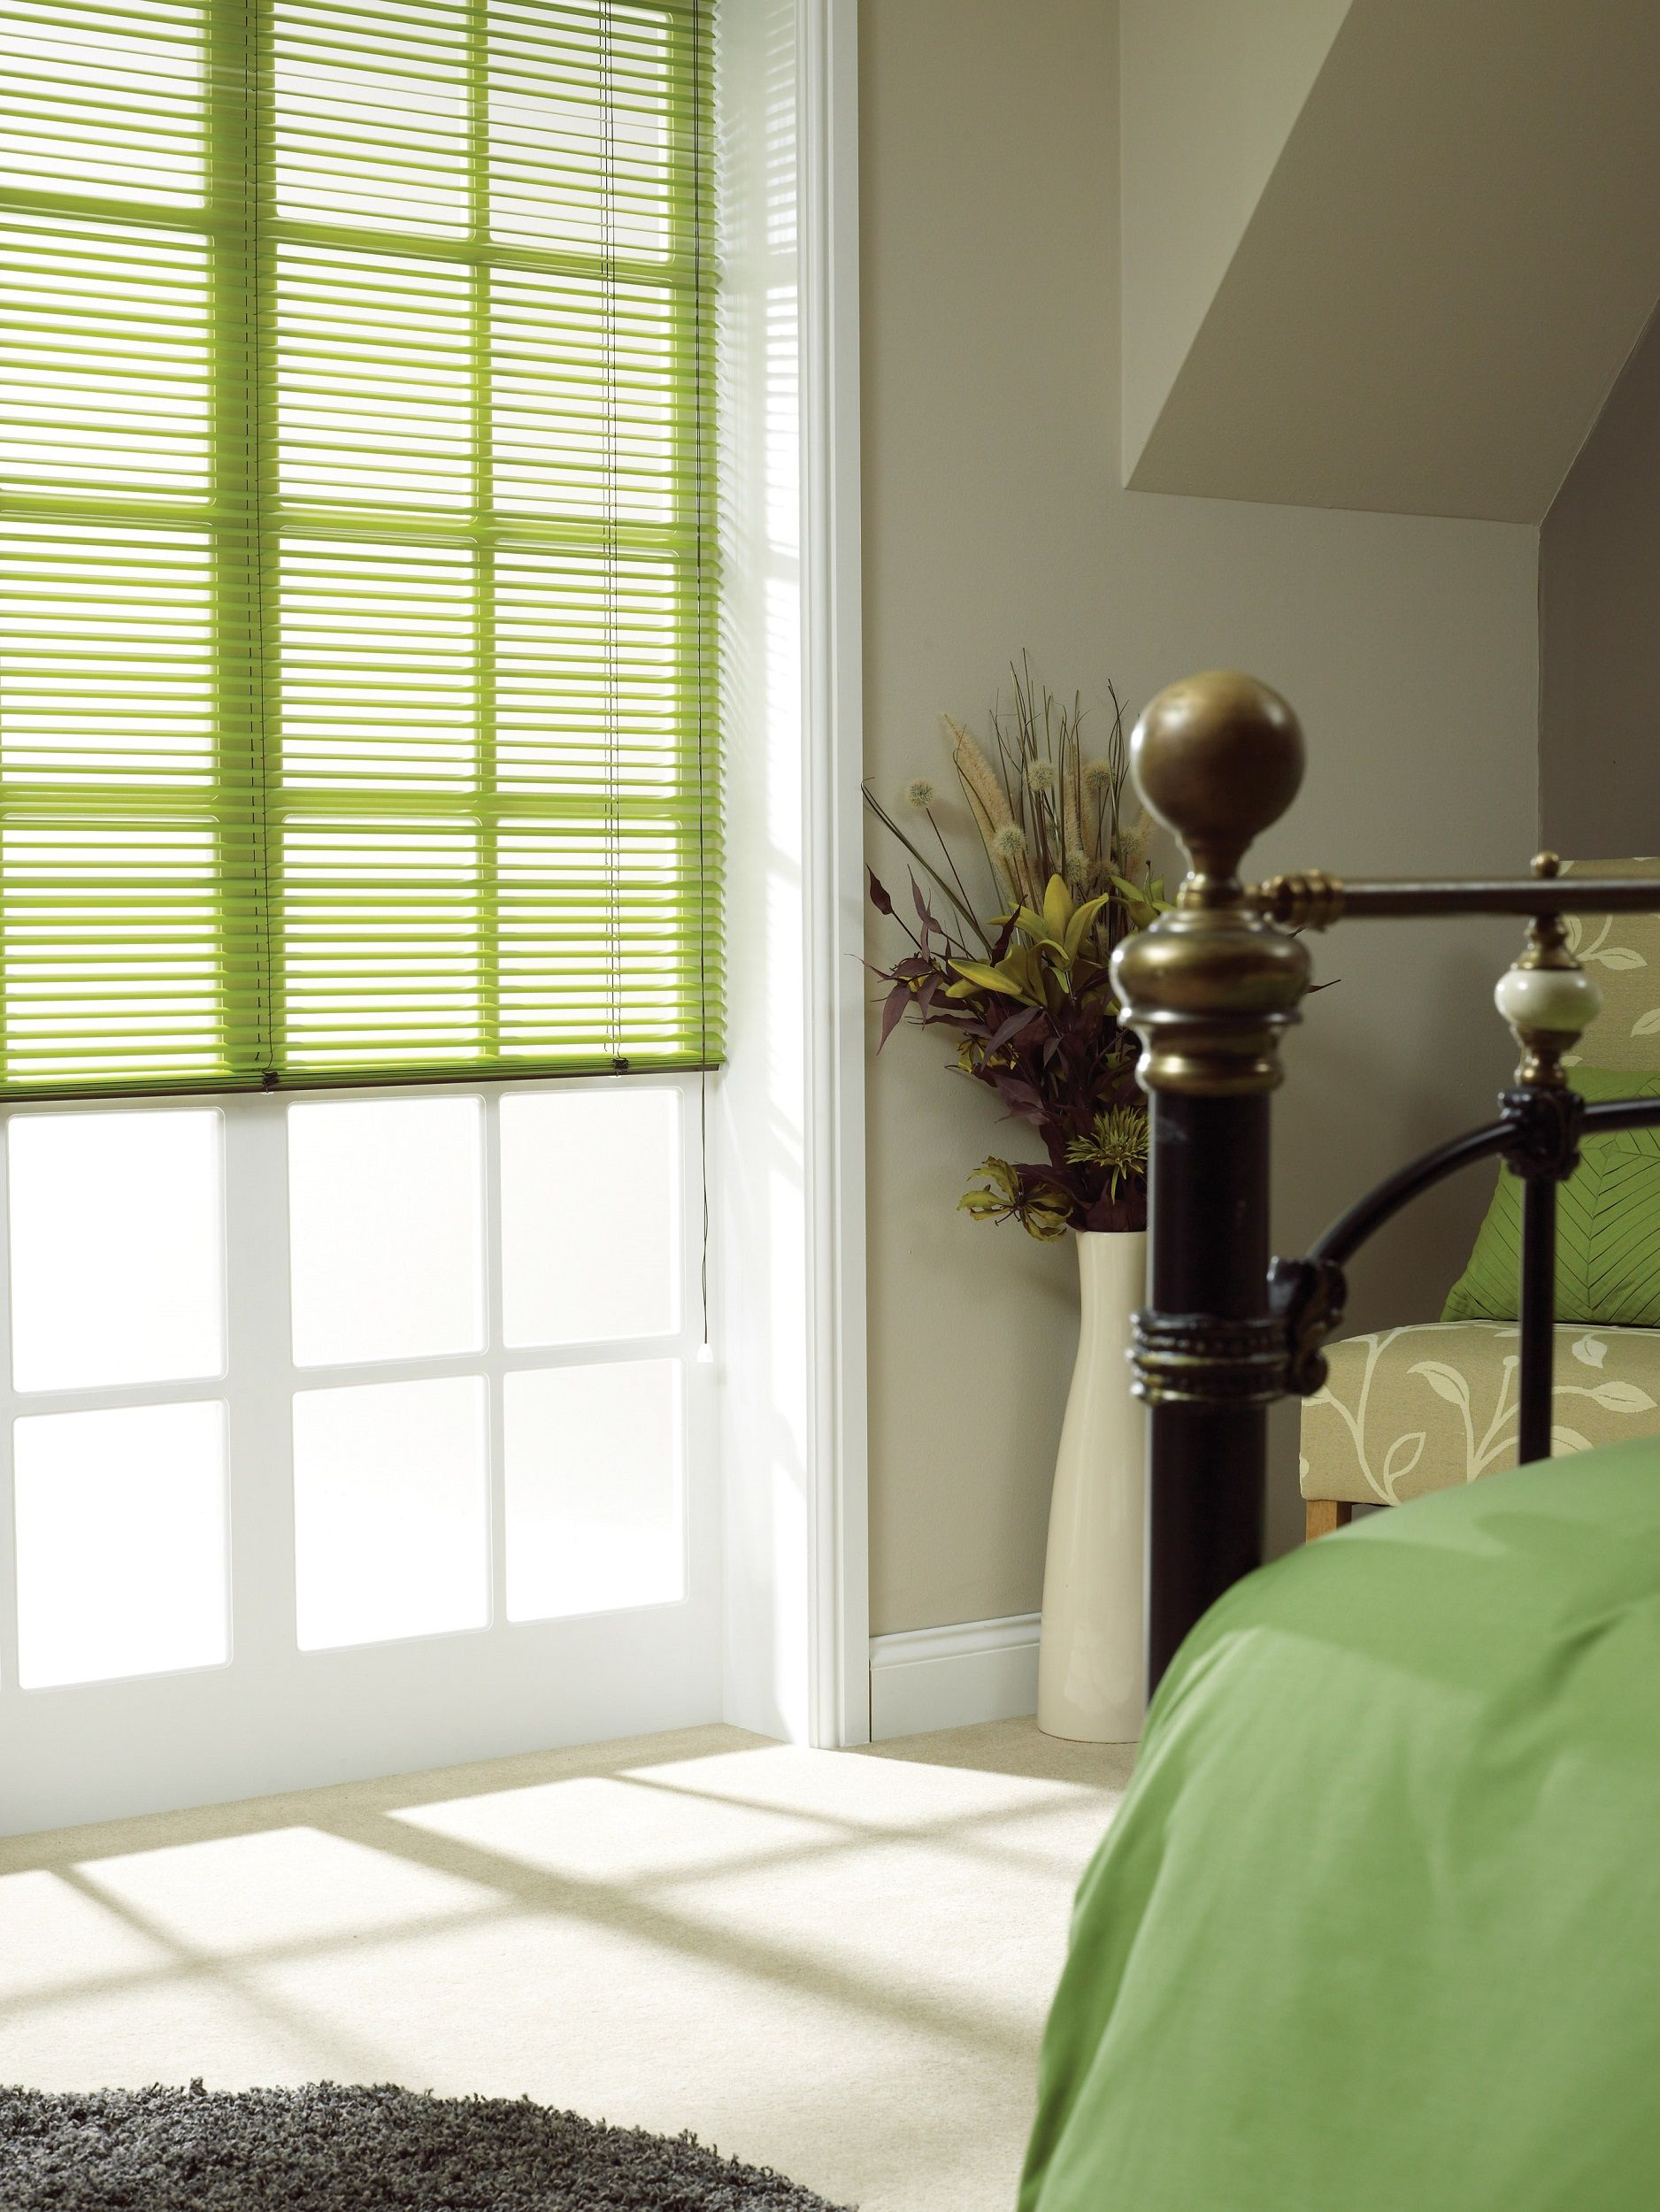 Apollo Green Blind Blinds for windows, Faux